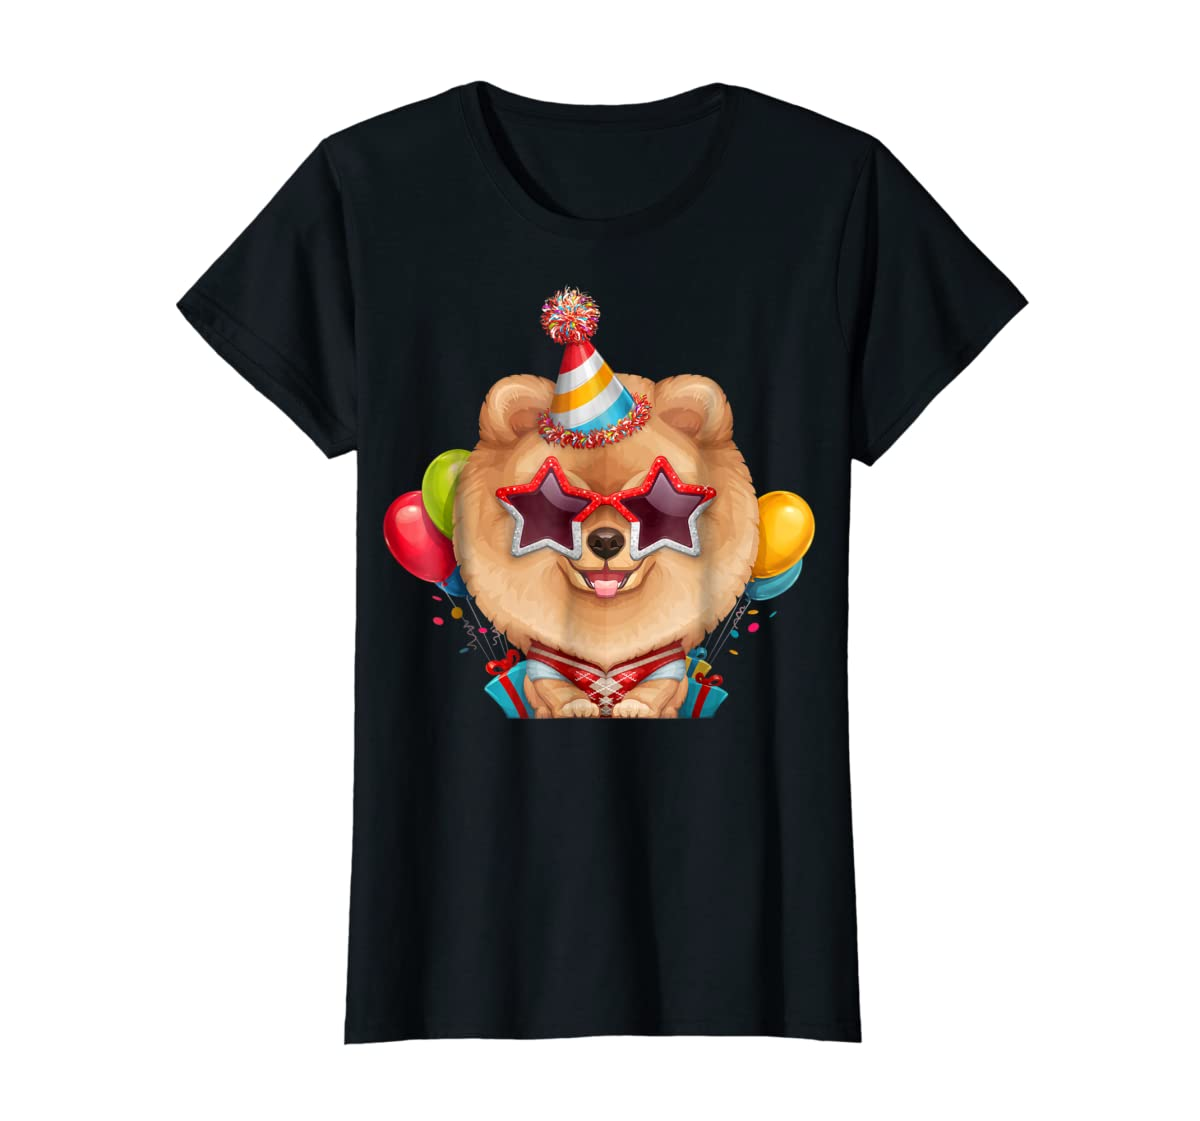 Orange Pomeranian in Glasses Birthday T-Shirt-Women's T-Shirt-Black